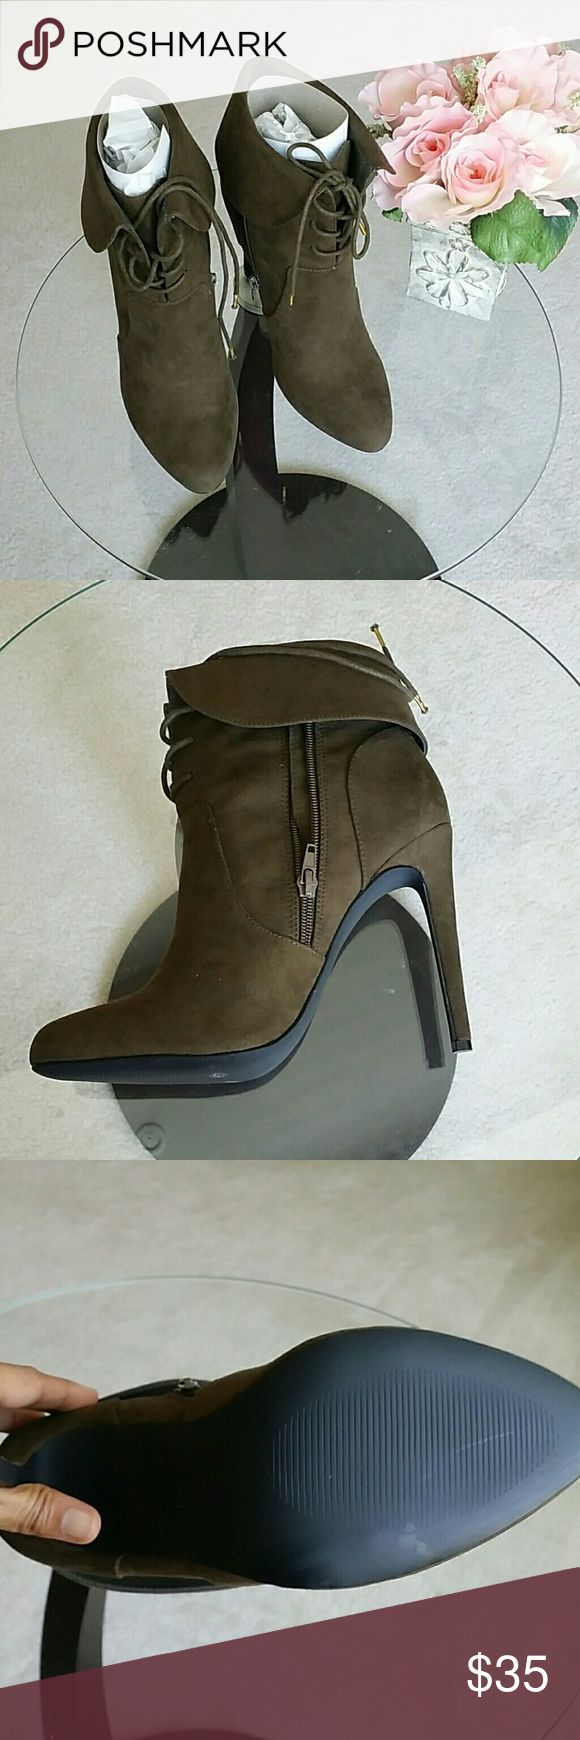 NWT Shoe dazzle booties size 9.5 M  Description : Cute booties l super sexy l  comfortable l heels 4 inches.  Material : Suede.  Color : Olive green. Condition : NWT Excellent no damage. Measurements : 9.5 M  Discount  with bundles. No trades  Shoe Dazzle Shoes Heels